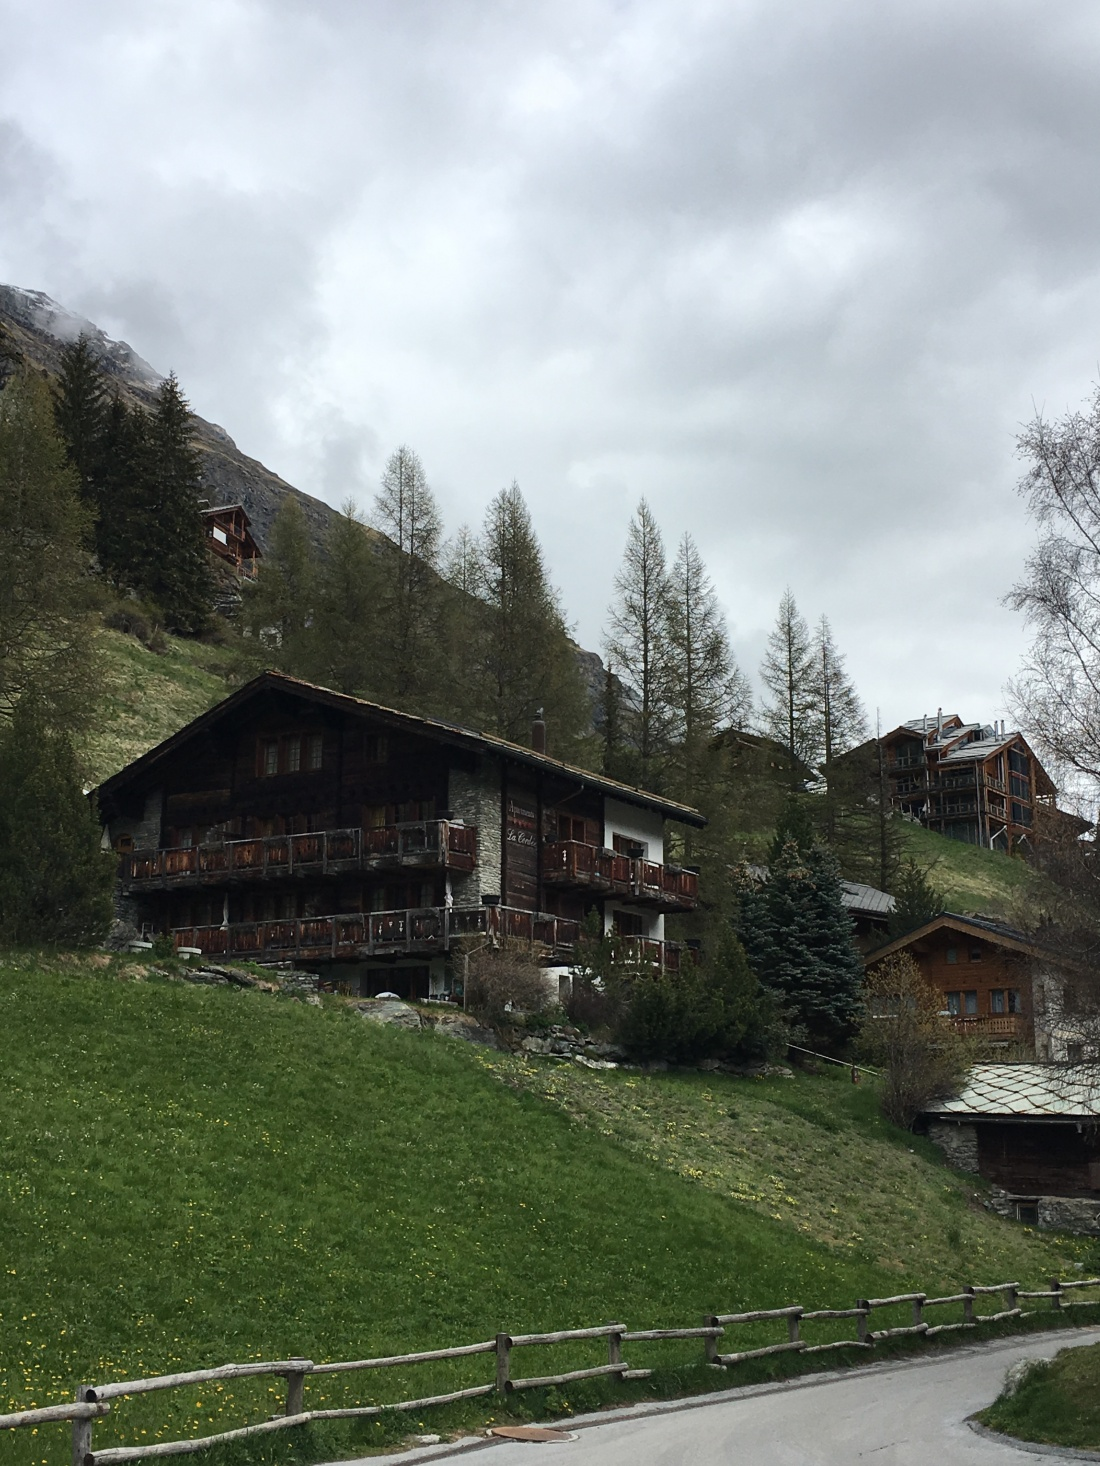 The surroundings of Zermatt, Switzerland. Brownell, May, 2019